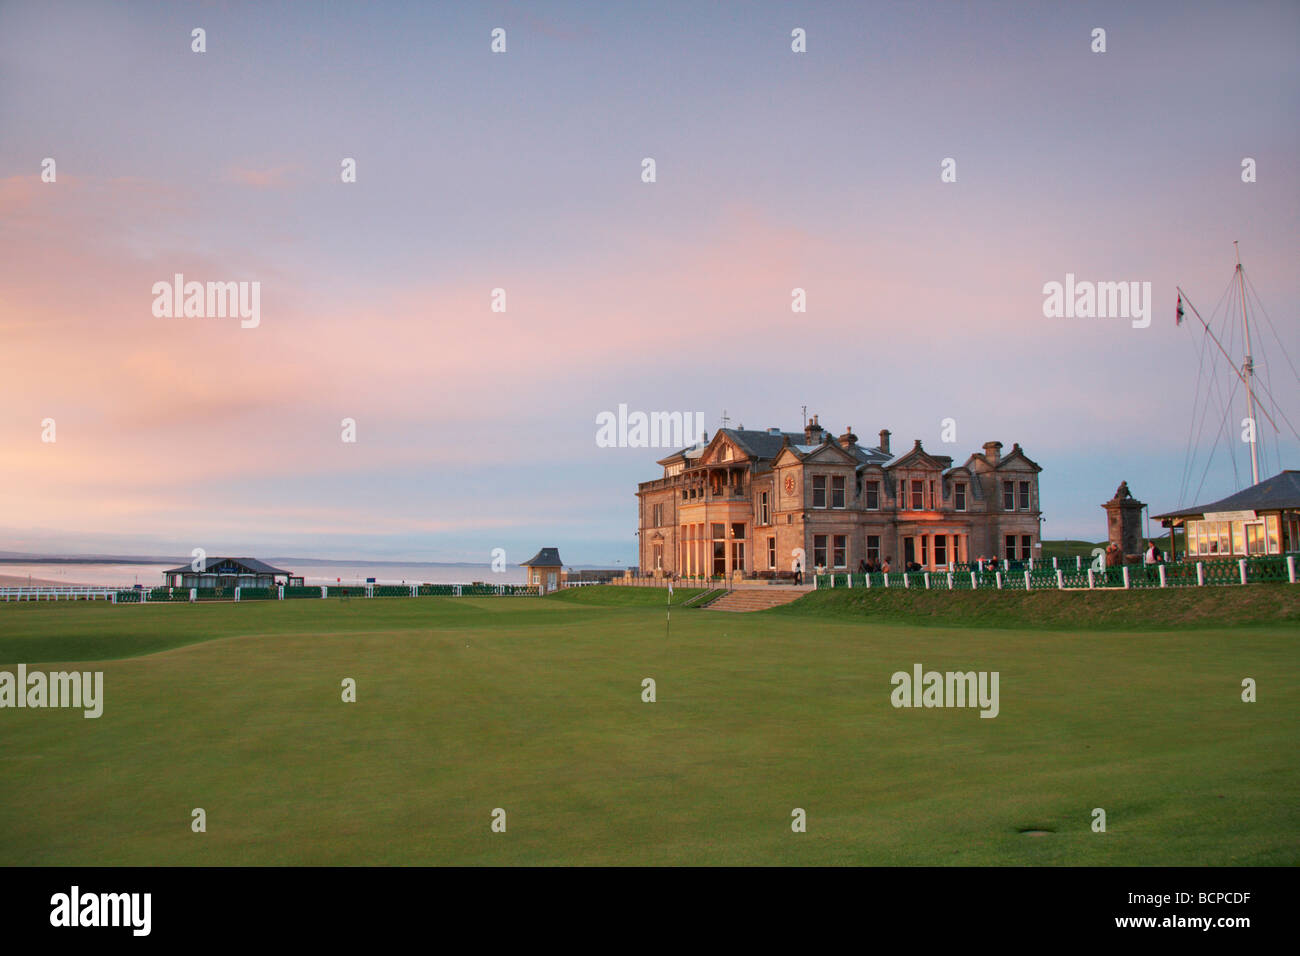 The18th green and clubhouse on the Old Course of the Royal and Ancient Golf Club, St Andrews, Fife, Scotland - Stock Image